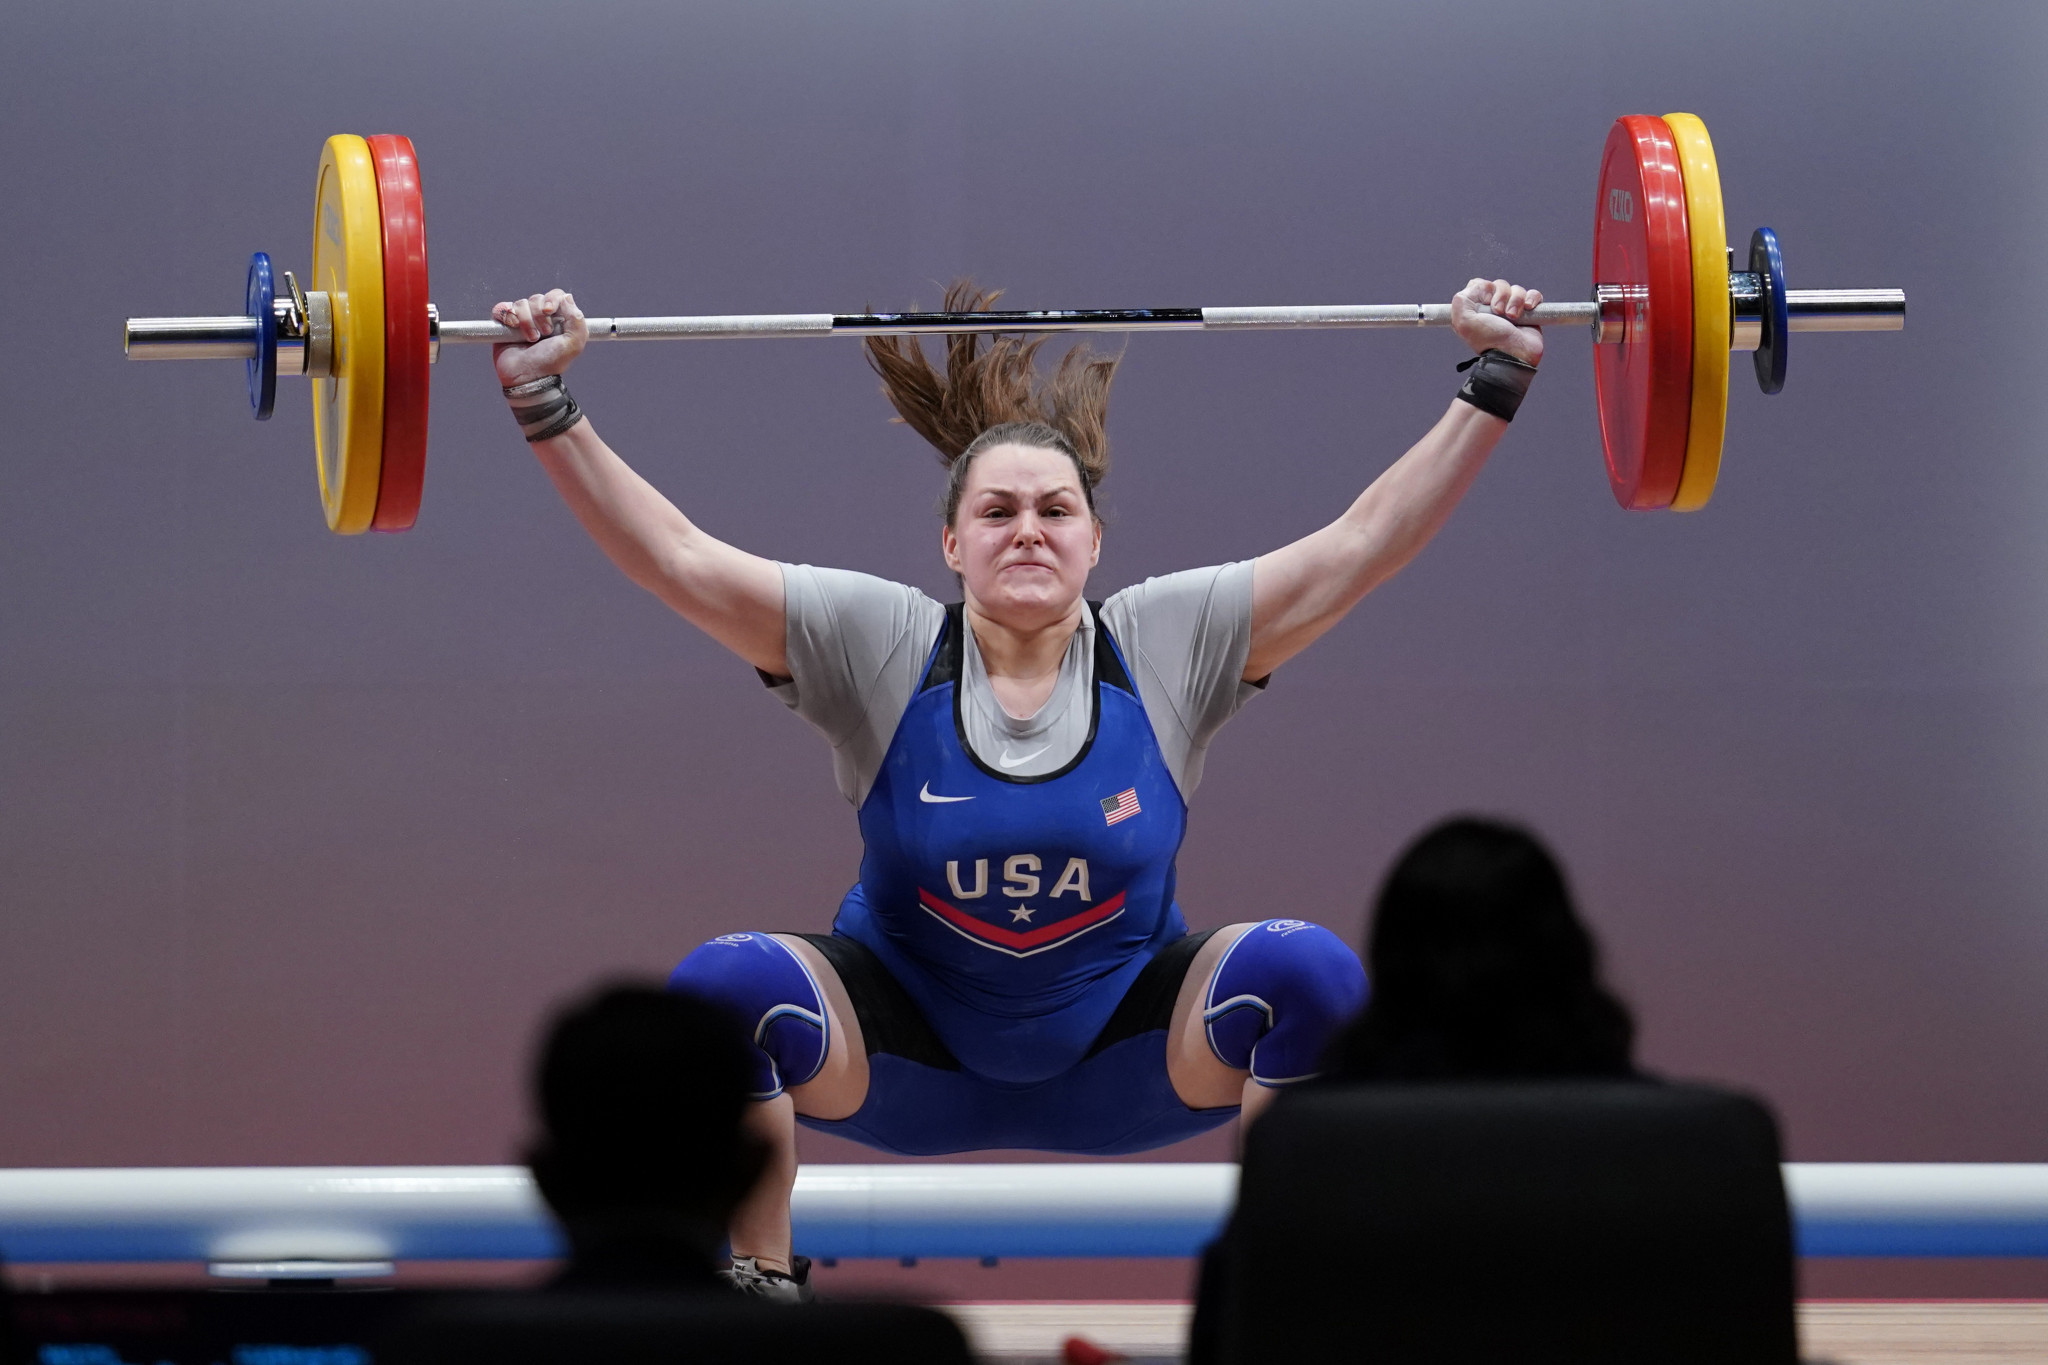 USA Weightlifting launch new online platform to help clubs connect with members